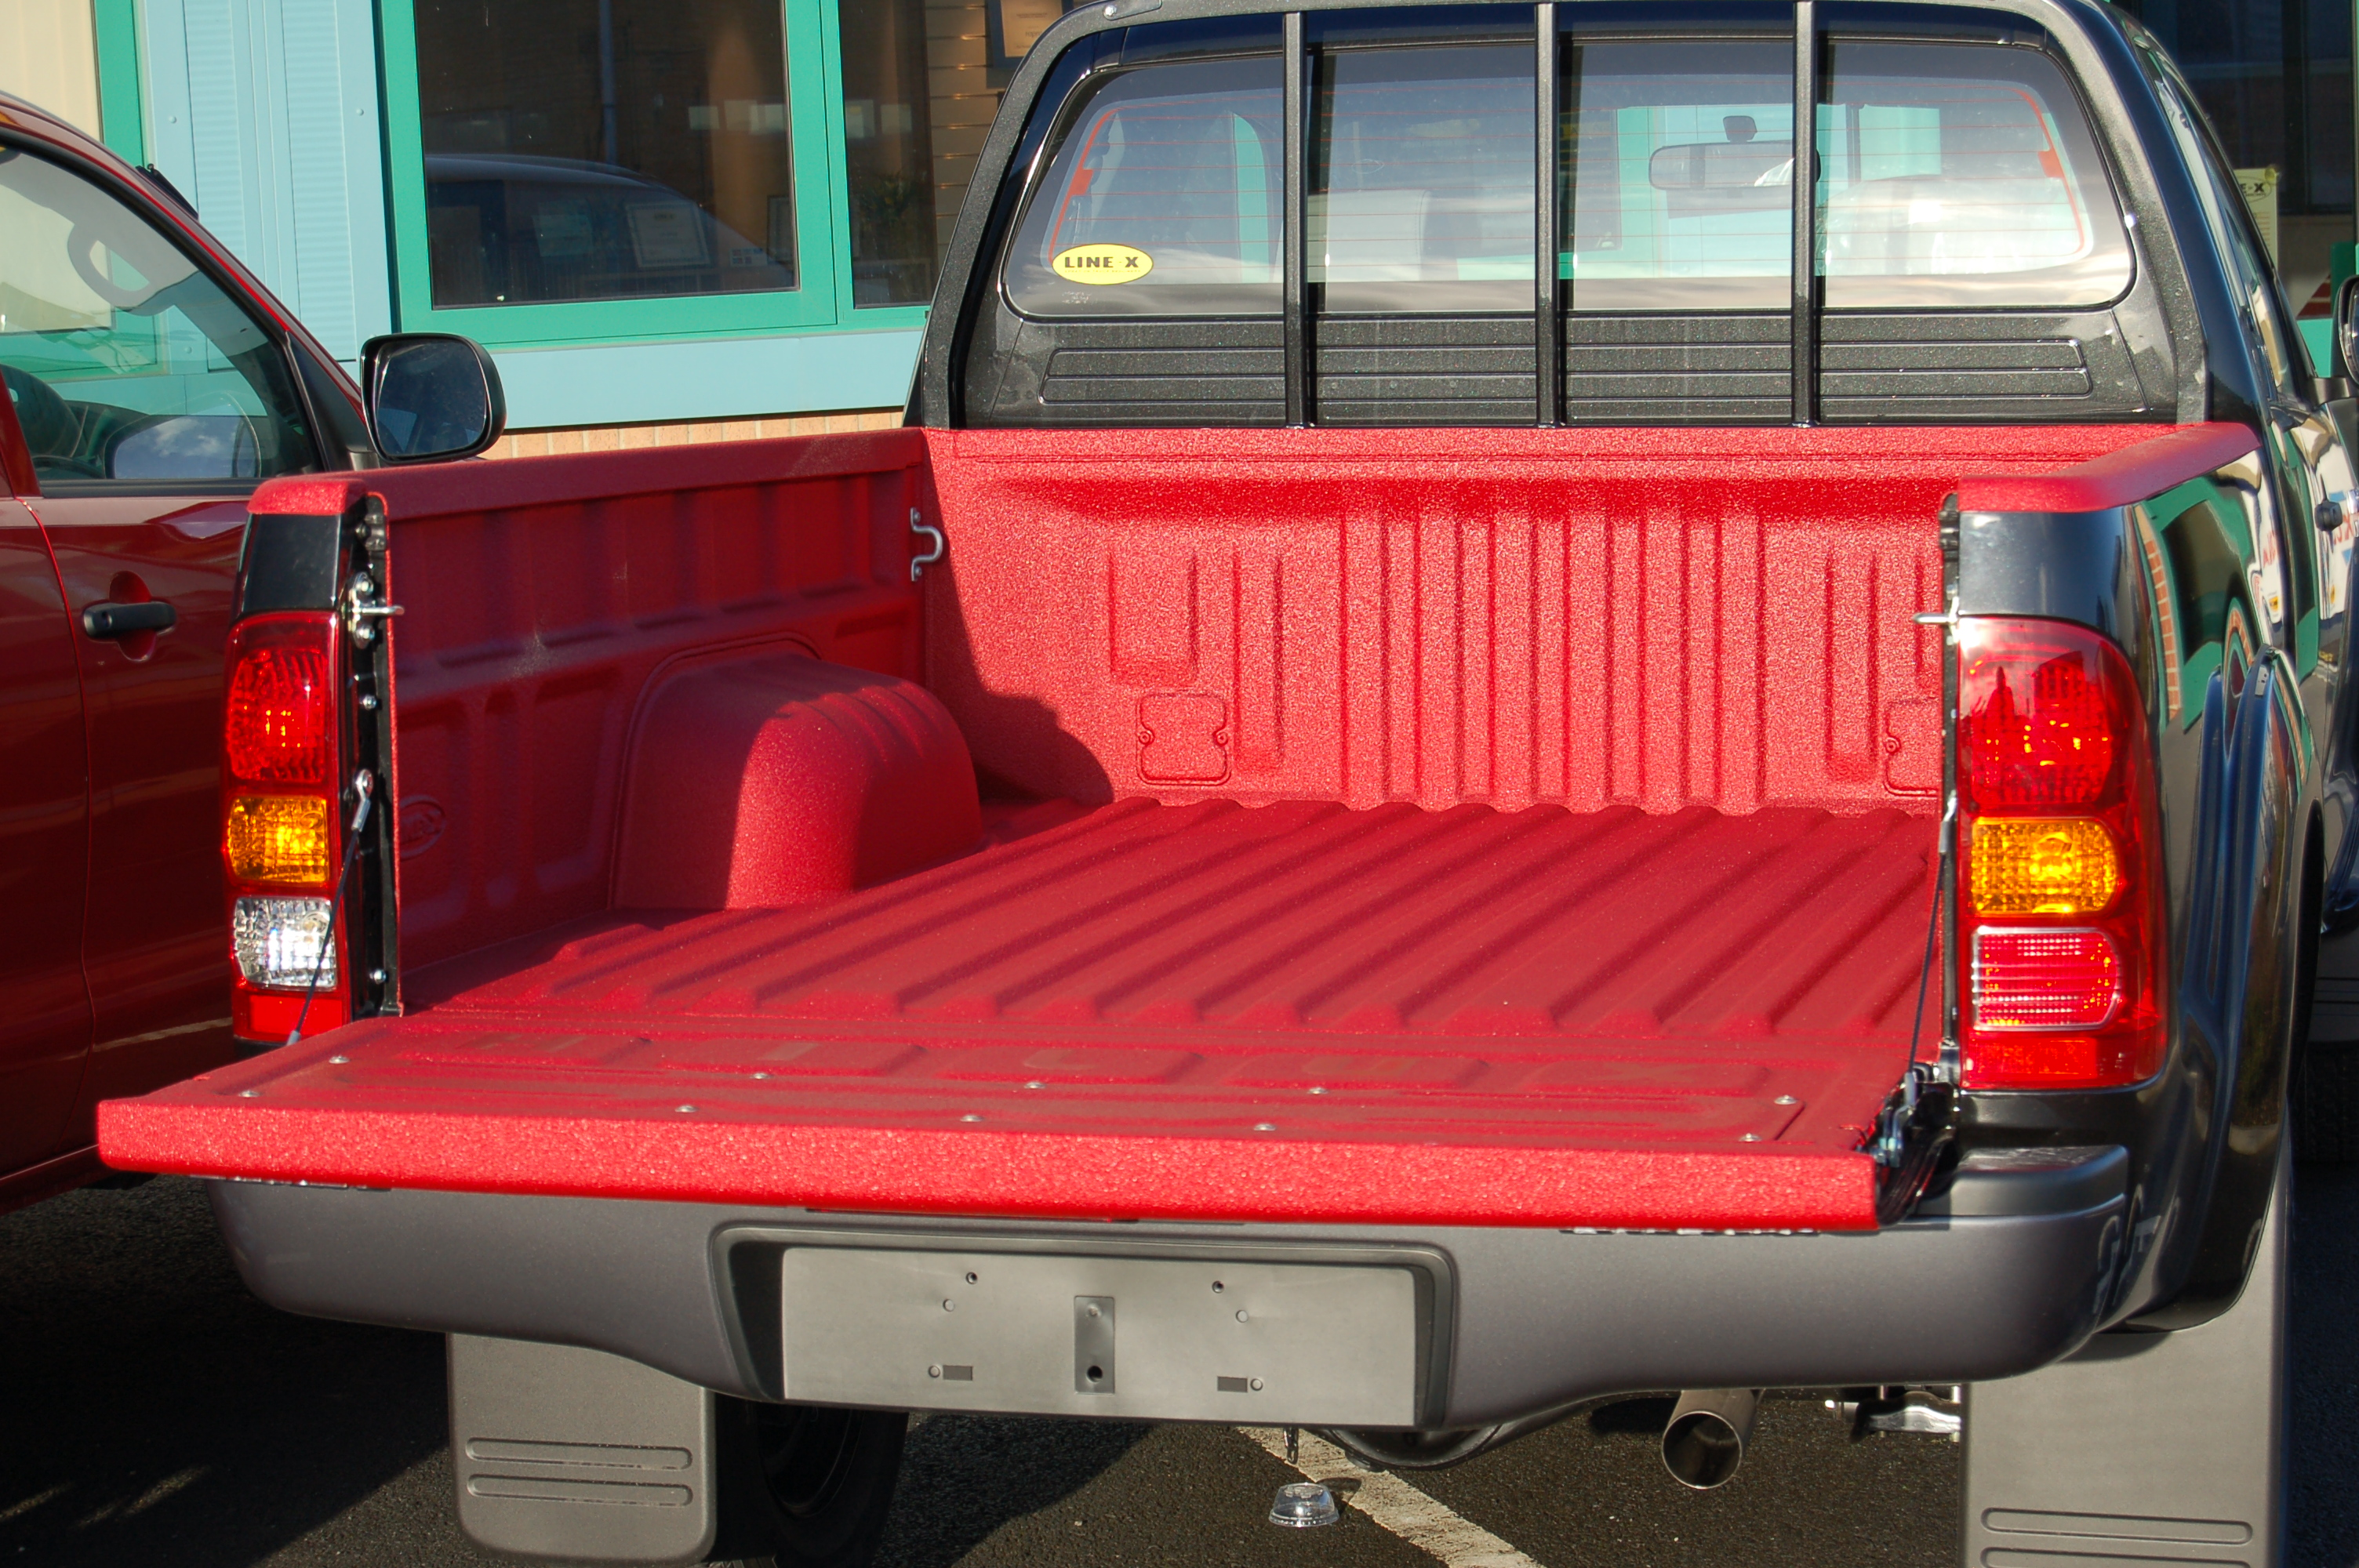 Bed Liner Spray >> Spray-on Pick-up Truck Bedliners from LINE-X